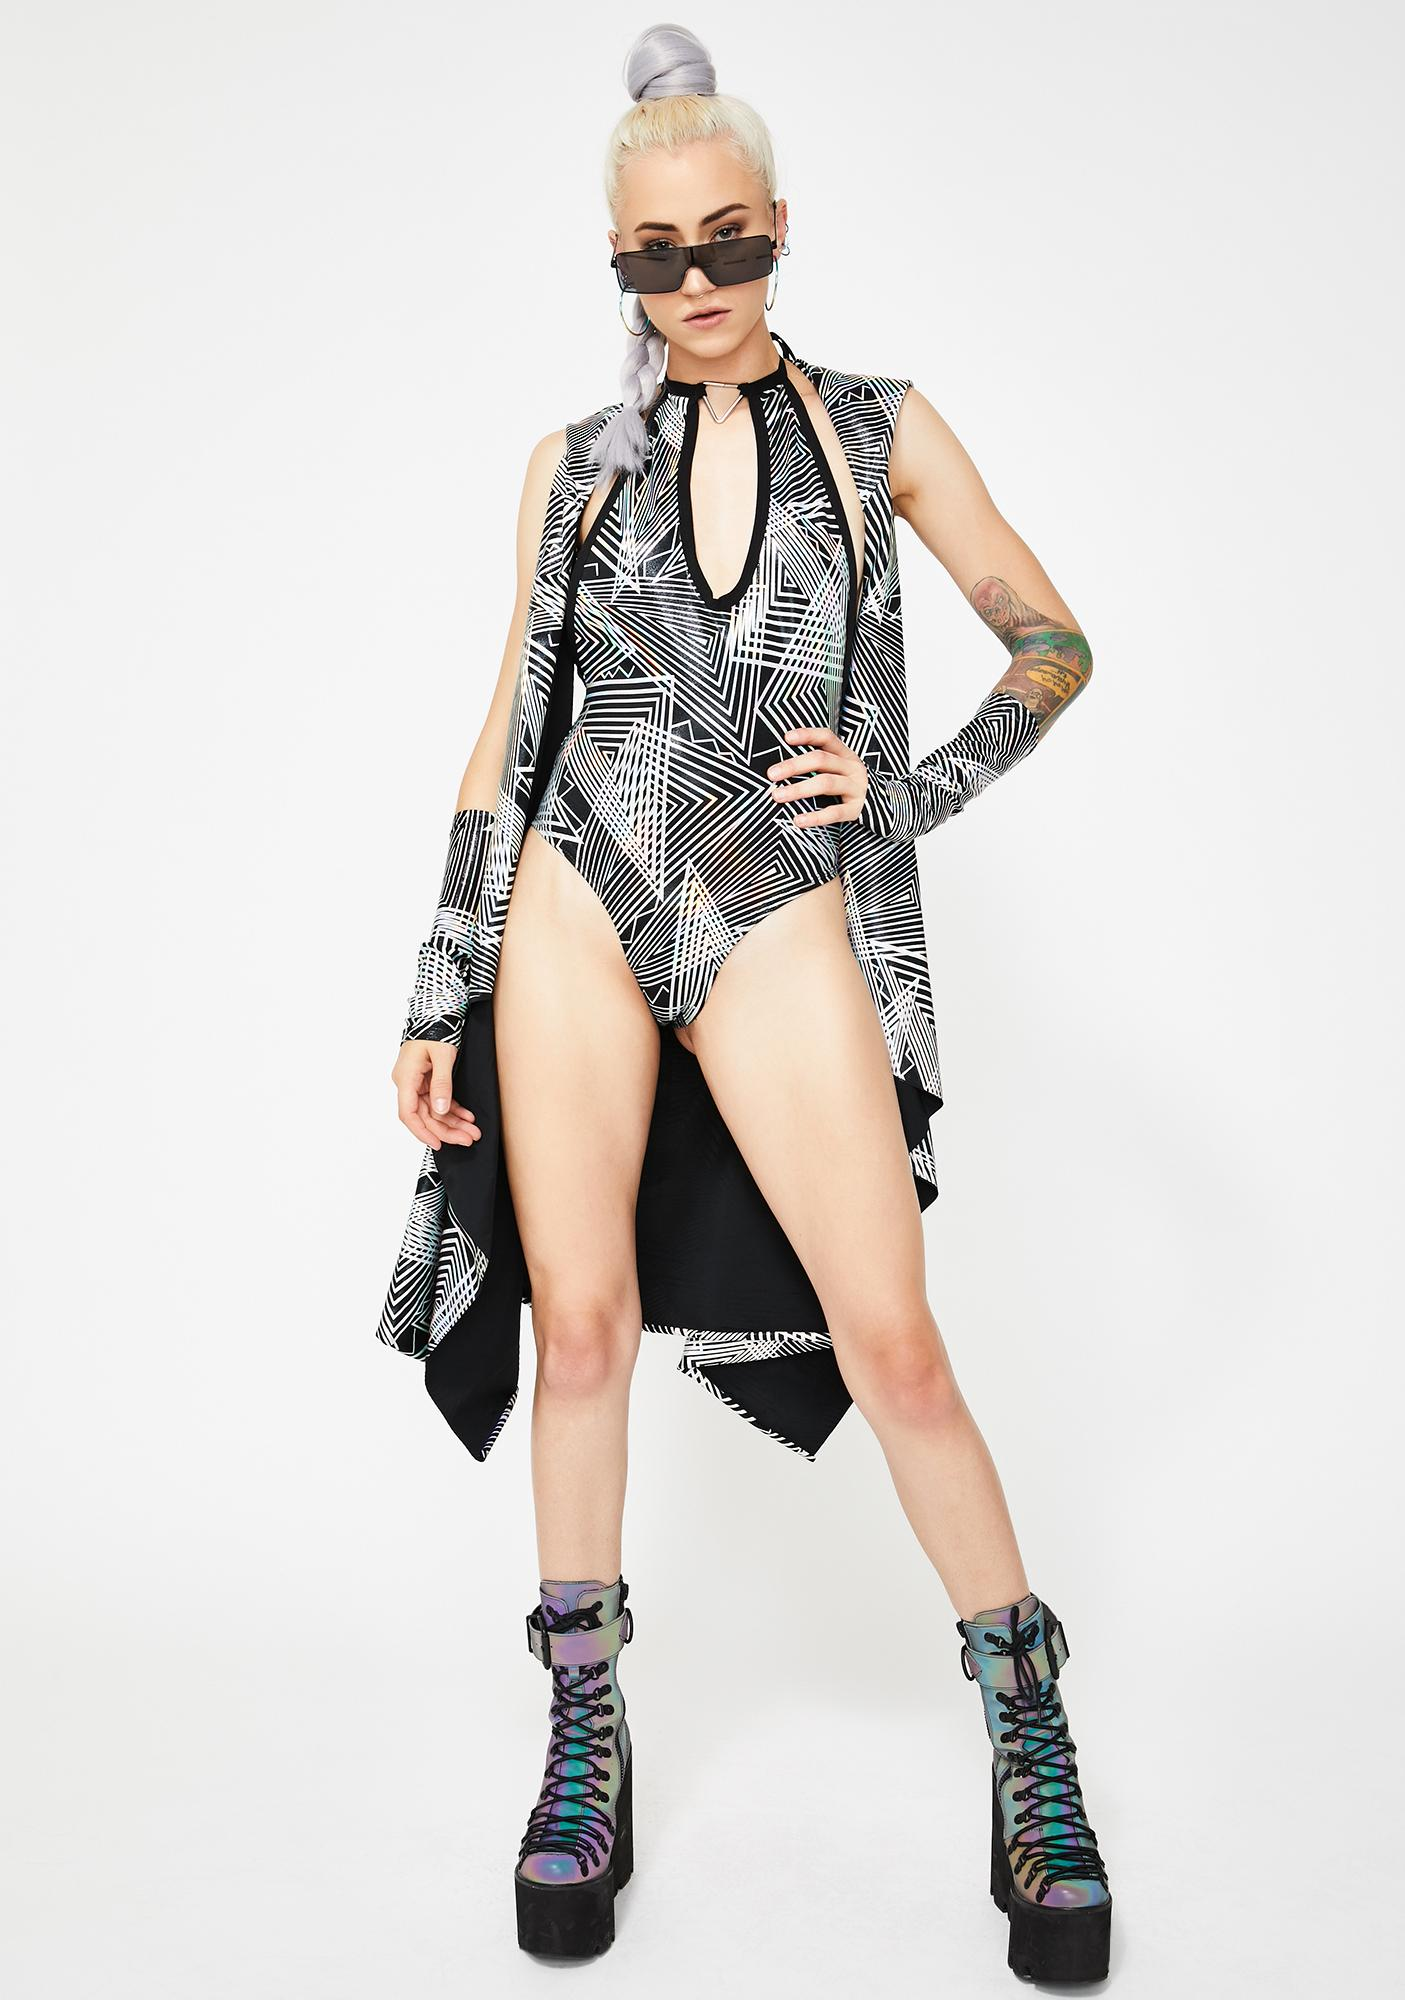 The Lyte Couture Tantric Plunge Bodysuit